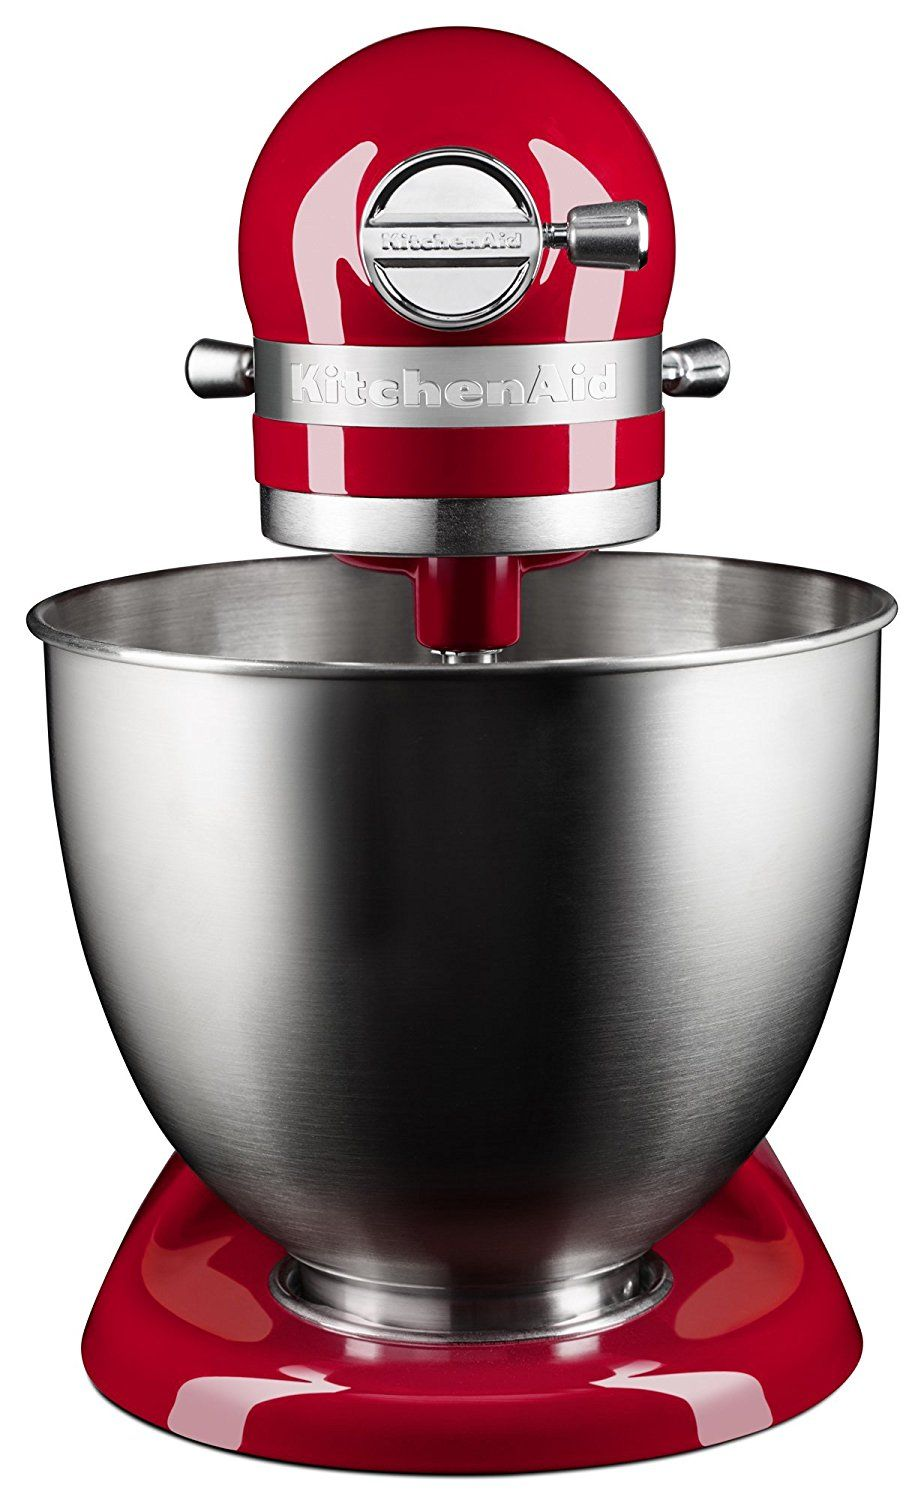 Kitchenaid Attachments Uses Even Though This Empire Red Artisan Mini Mixer Is The Smallest